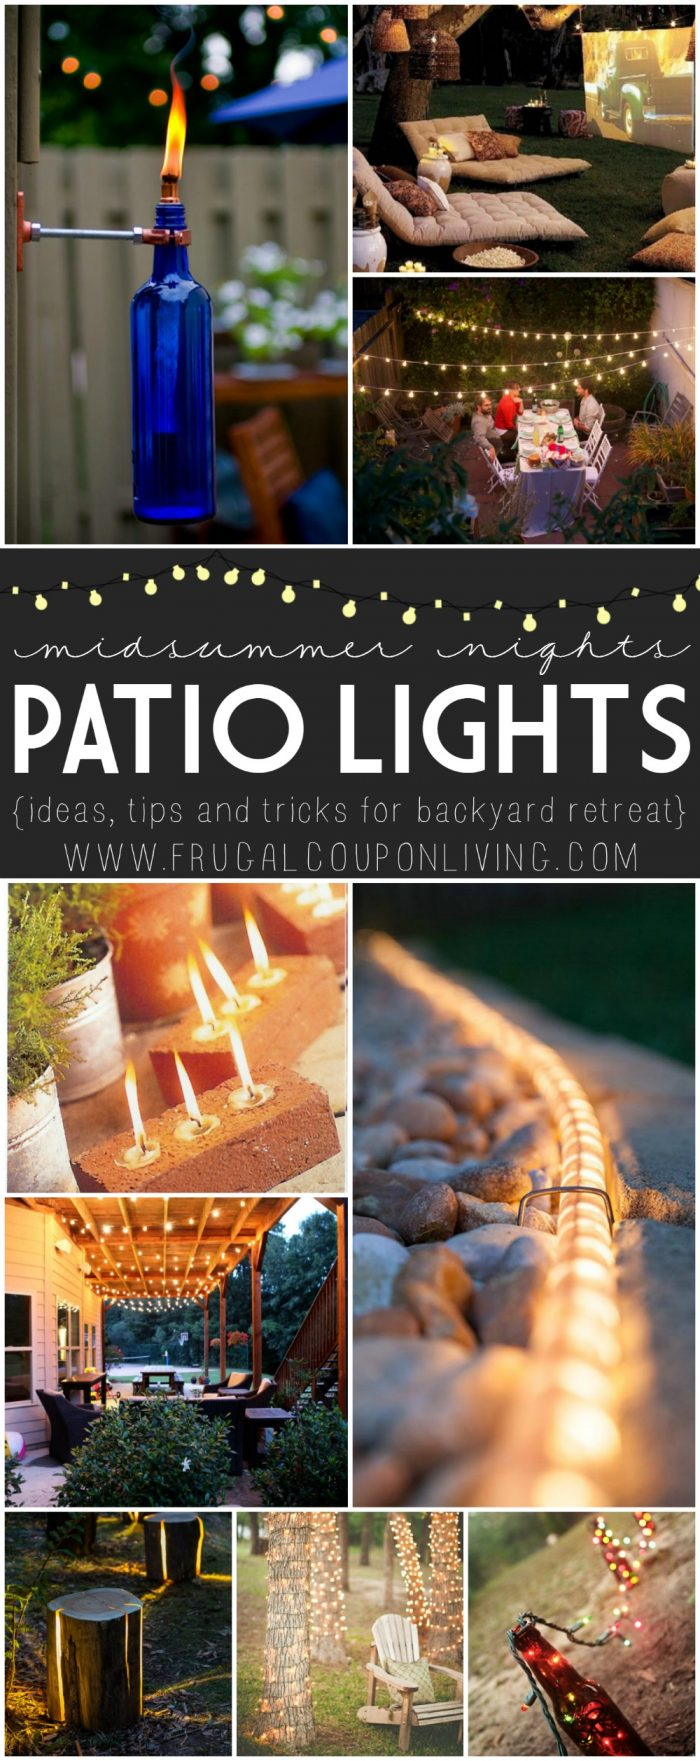 patio-light-ideas-frugal-coupon-living